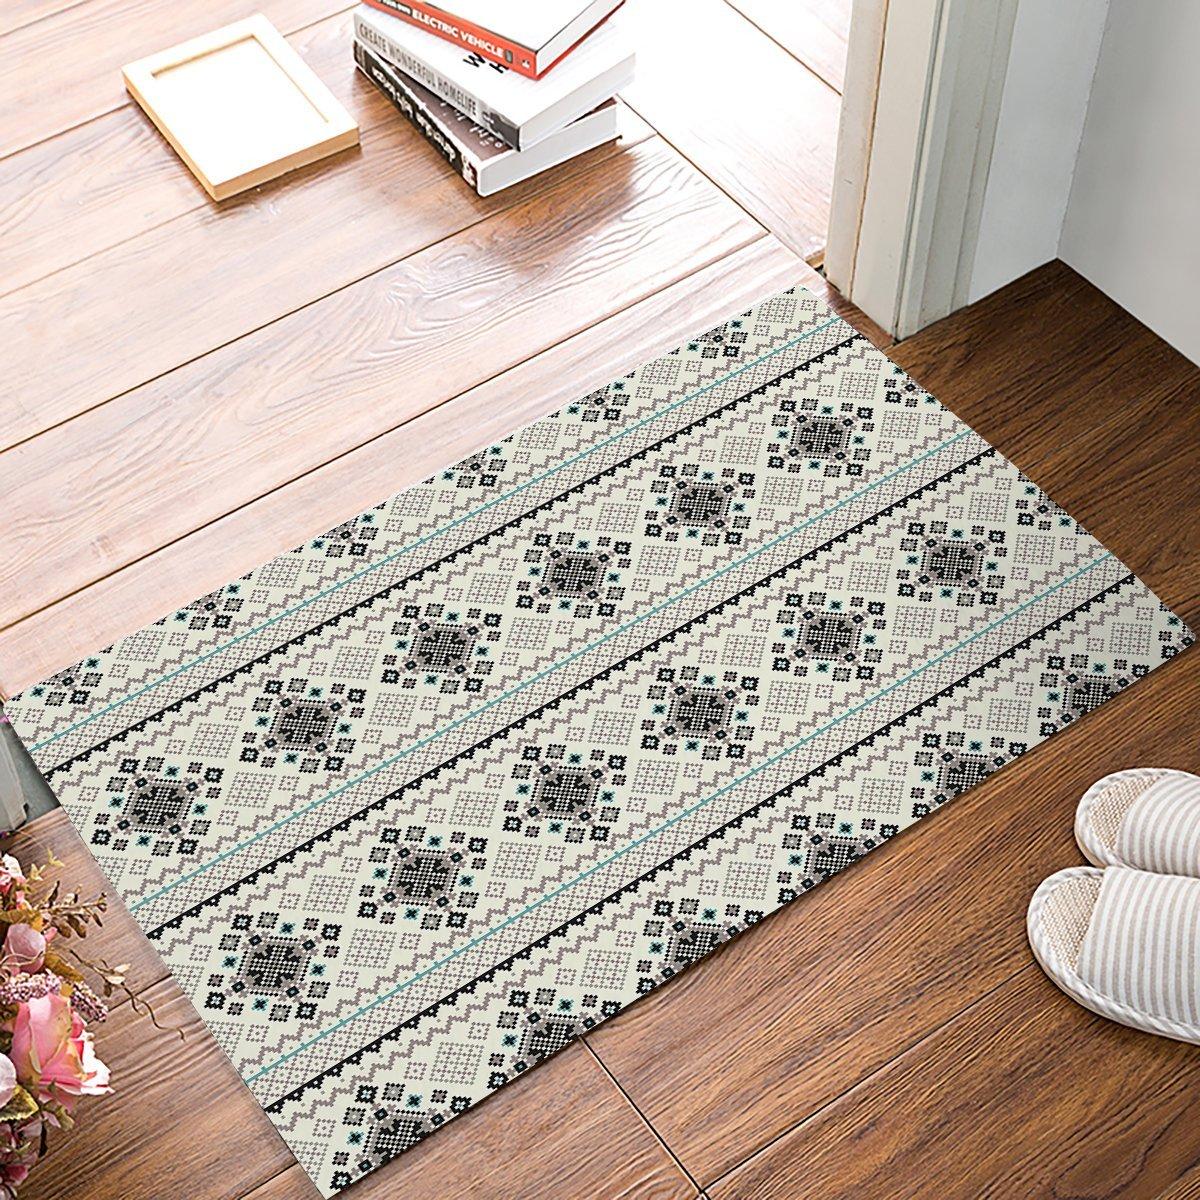 Vintage Bohemia Decorative Pattern Door Mats Kitchen Floor Bath Entrance Rug Mat Absorbent Indoor Bathroom Decor Doormats